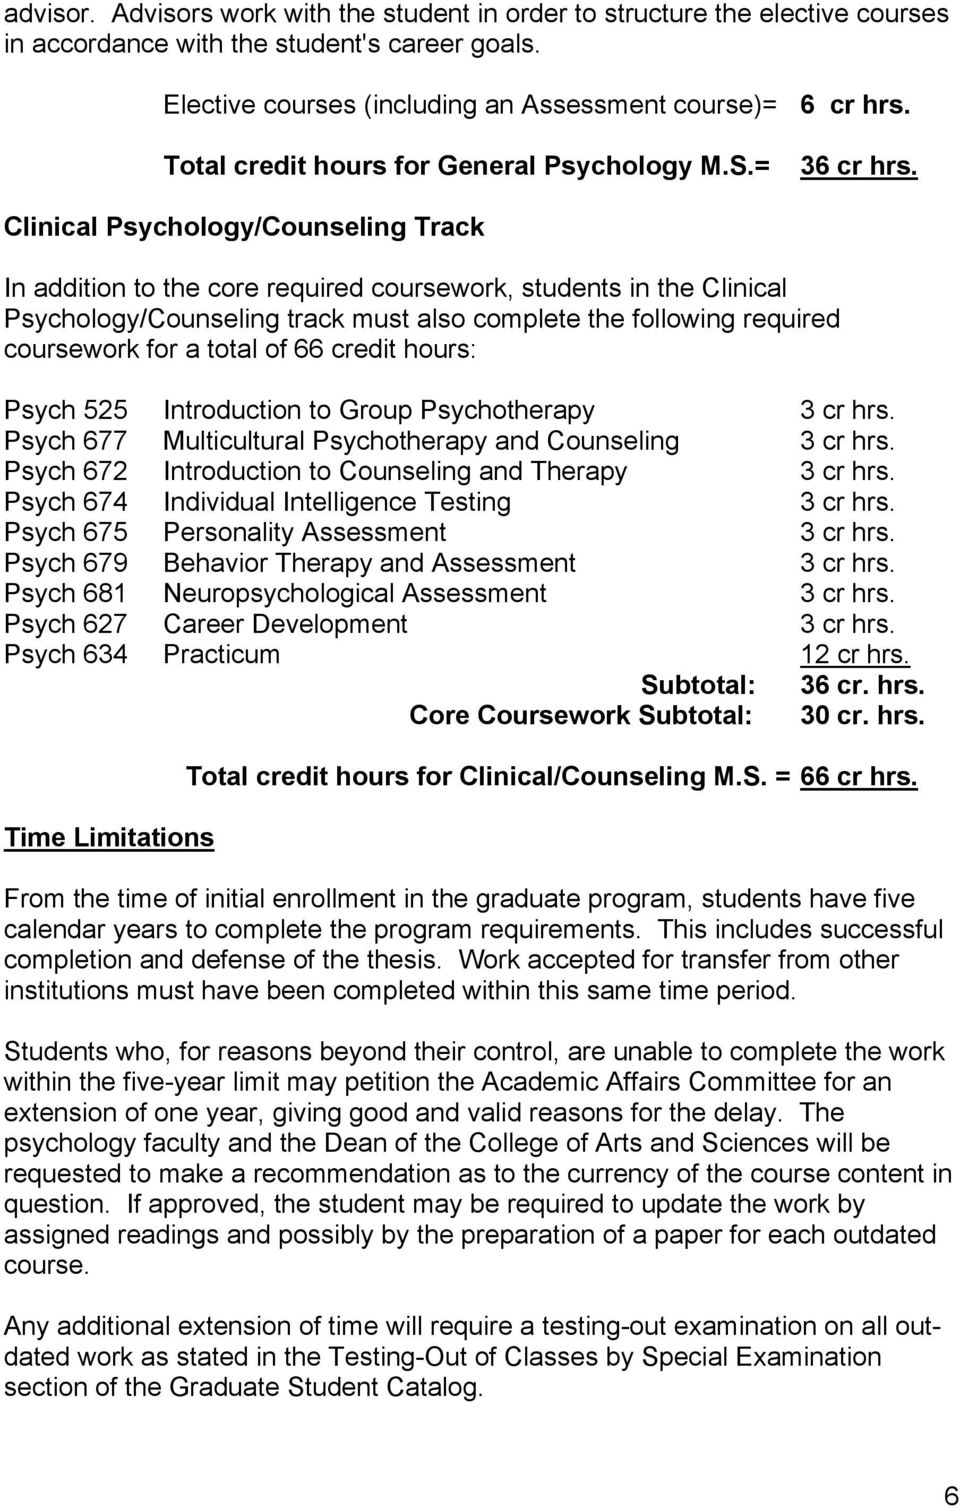 Clinical Psychology/Counseling Track In addition to the core required coursework, students in the Clinical Psychology/Counseling track must also complete the following required coursework for a total